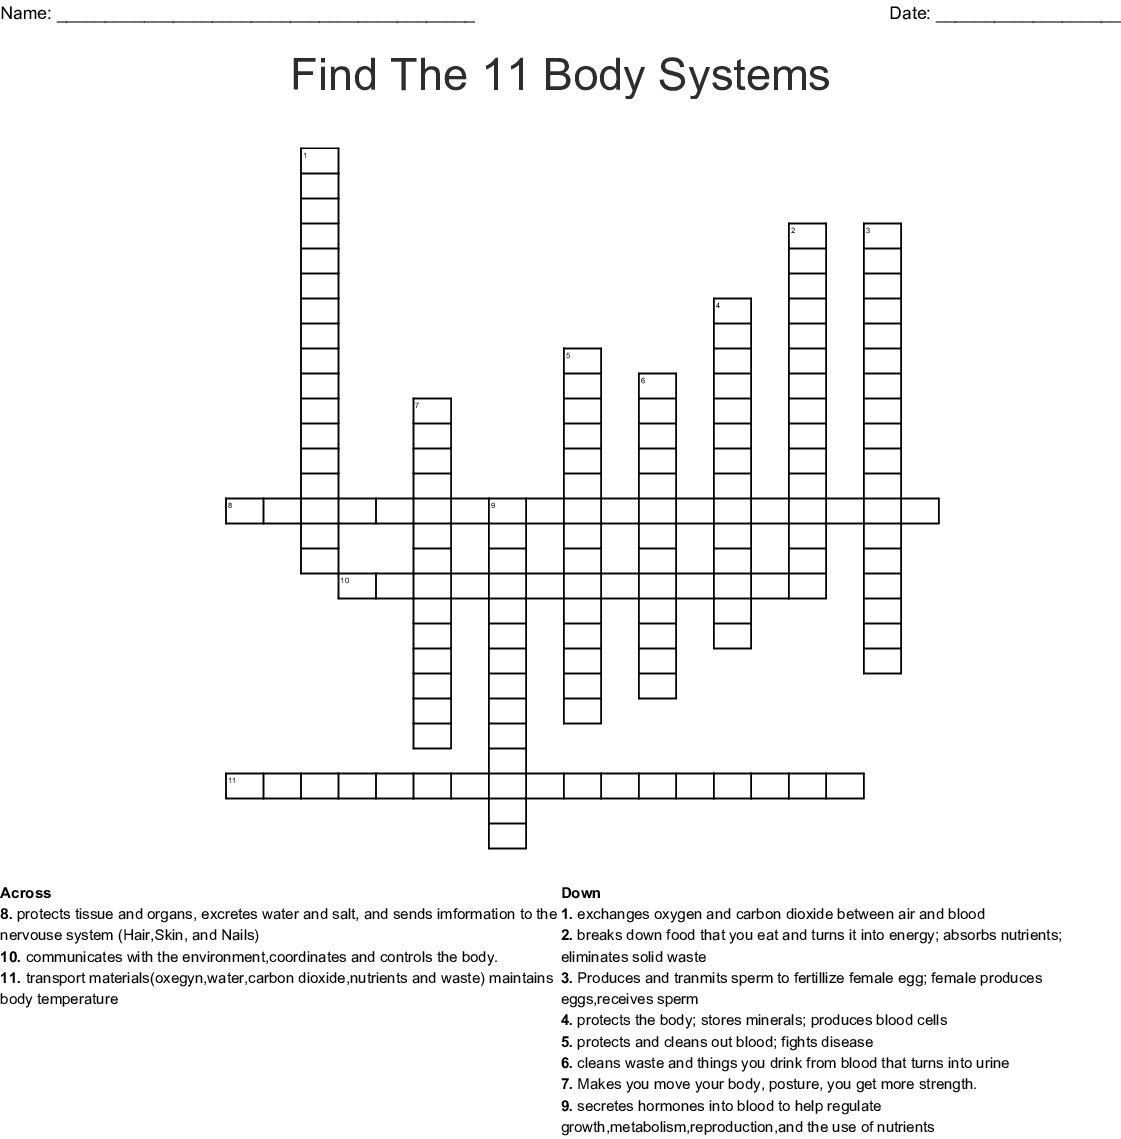 Human Body Organ Systems Crossword - WordMint